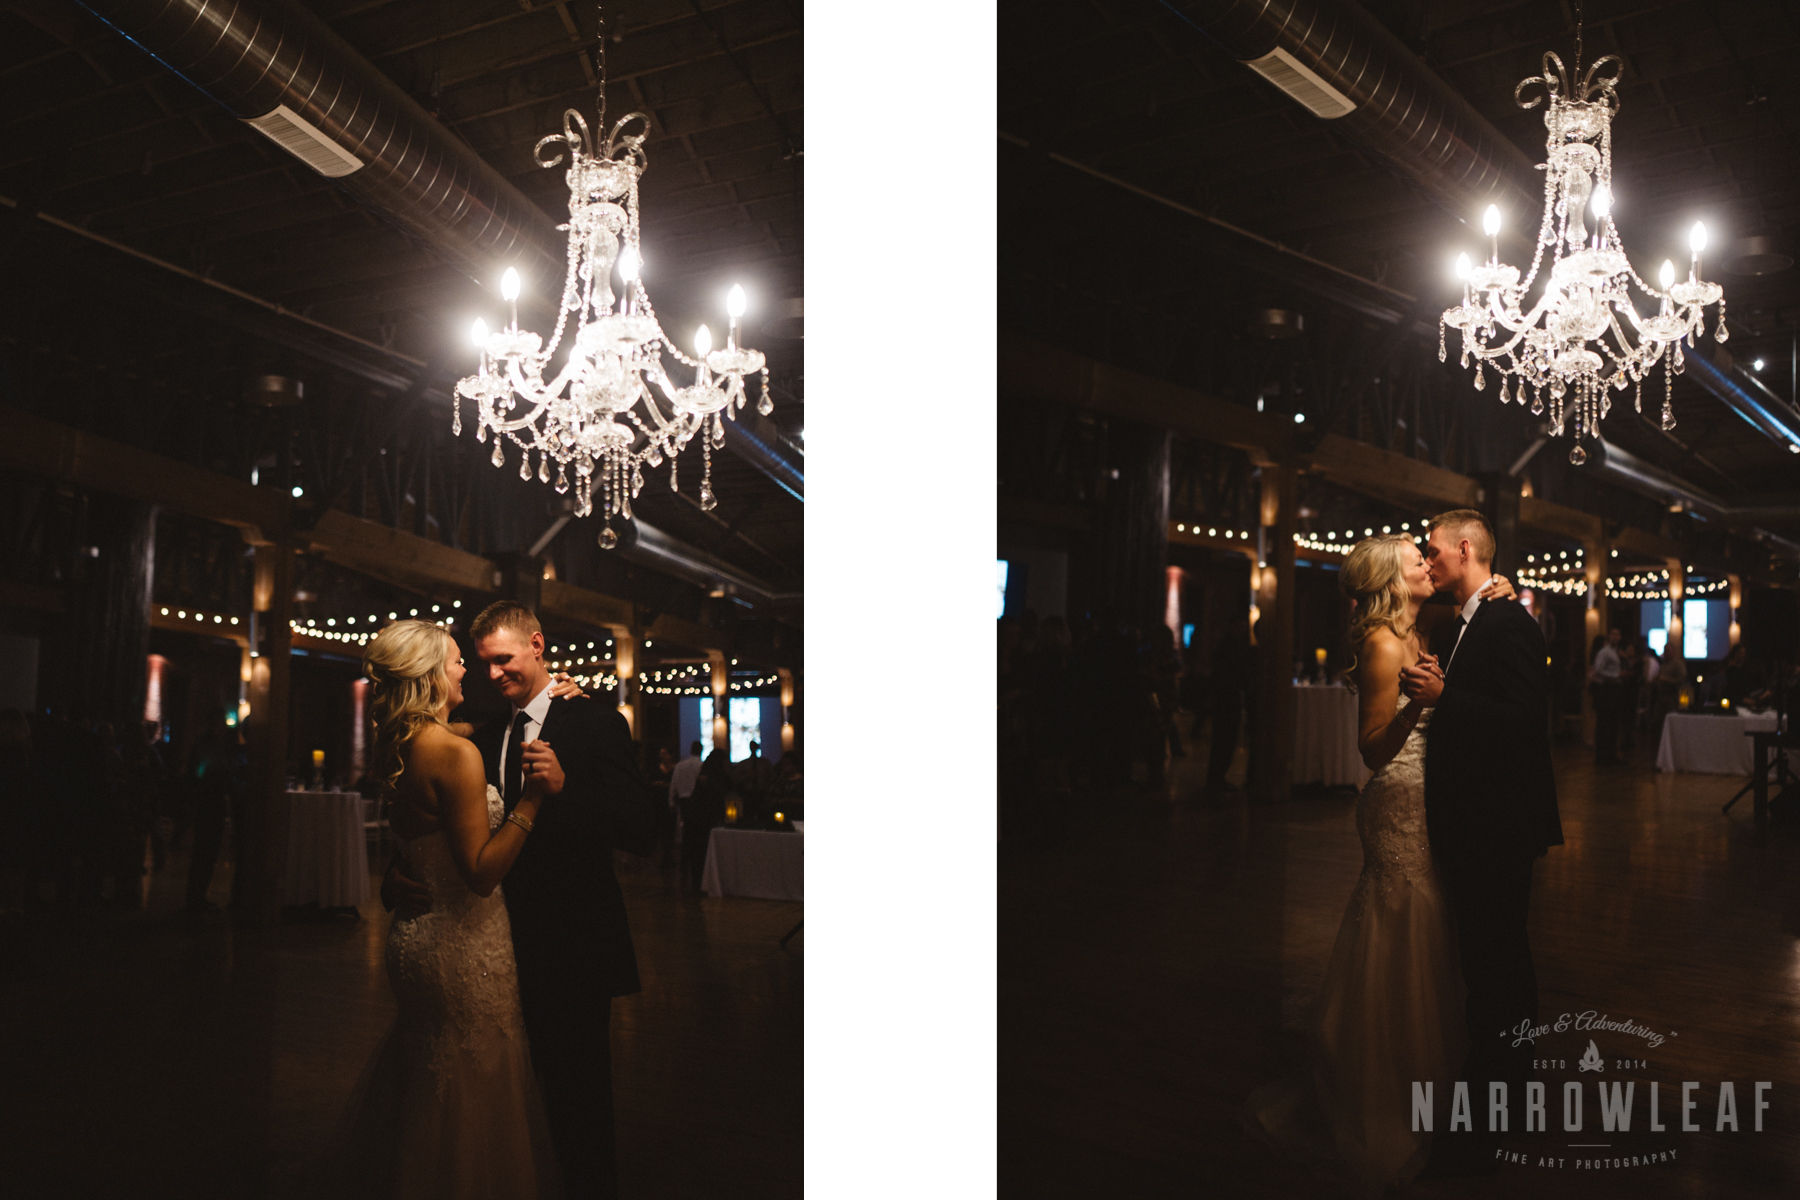 Stillwater-Minnesota-wedding-dance-jx-events.jpg